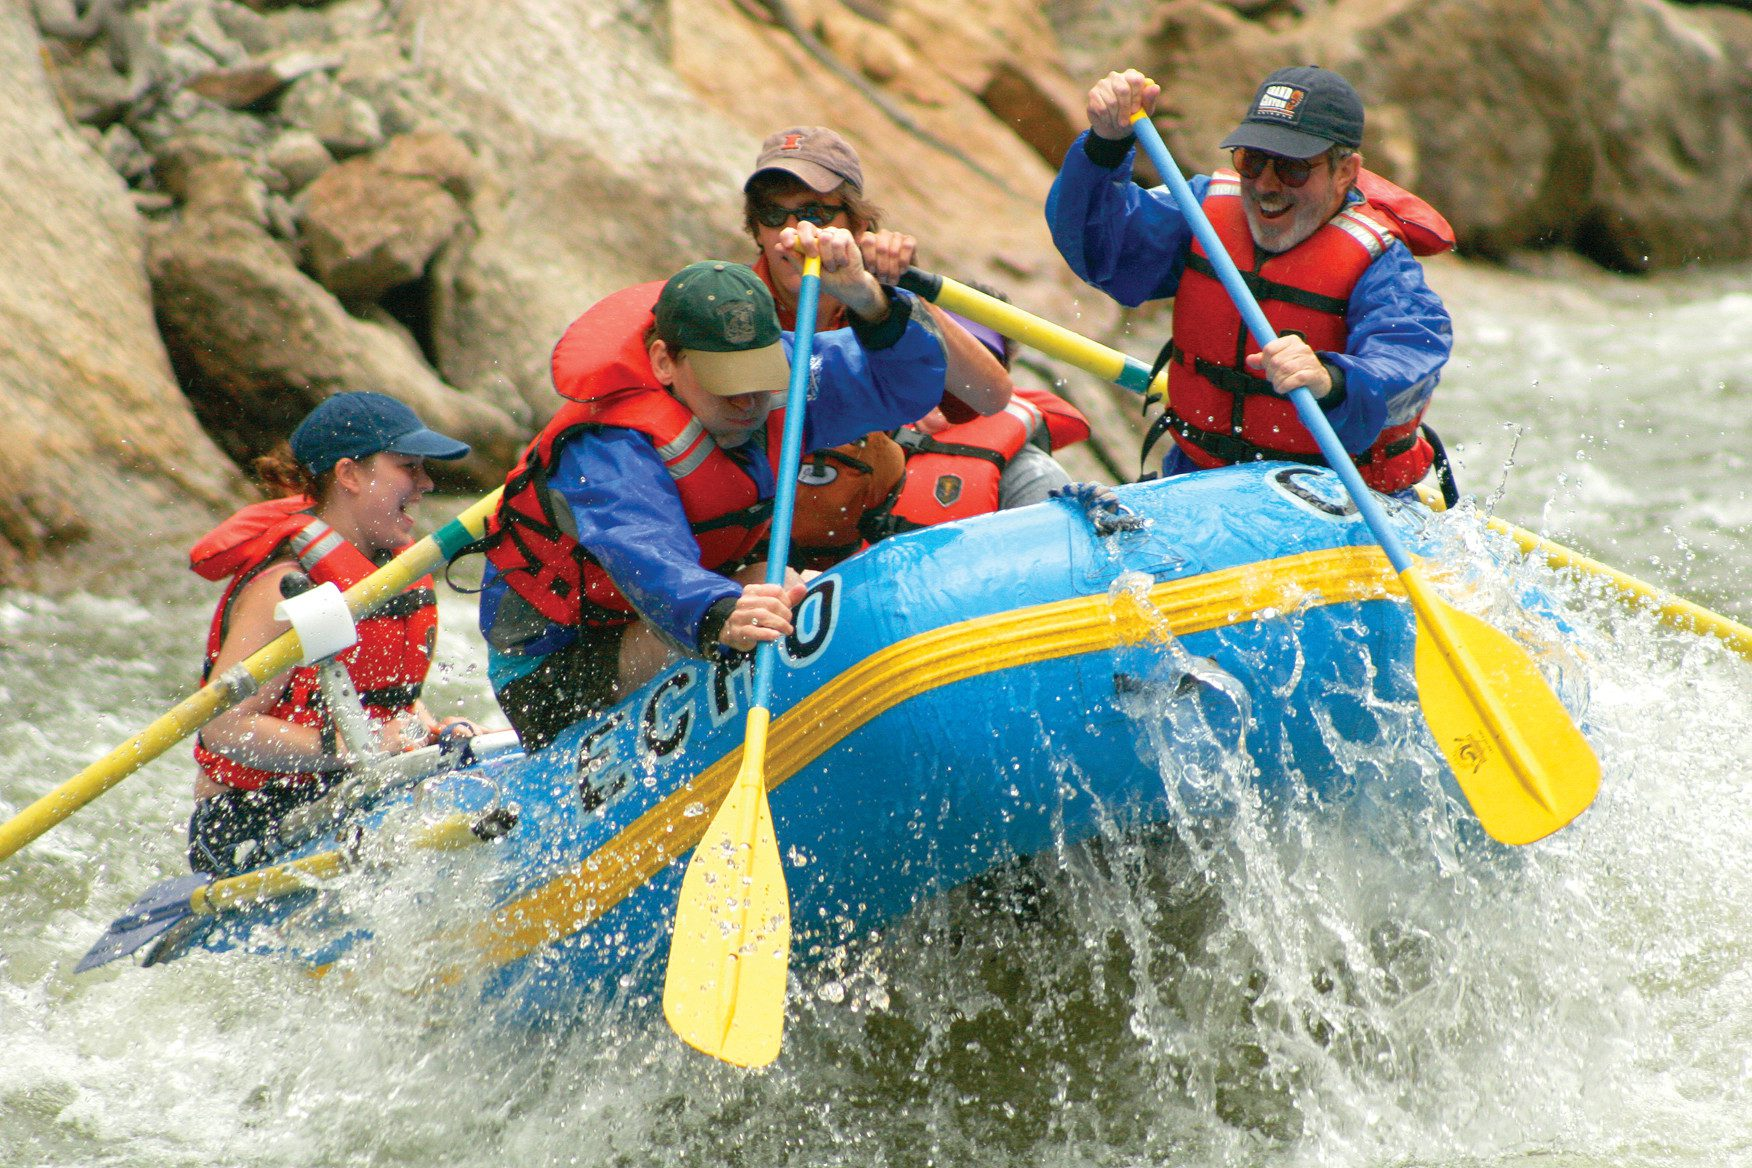 Tackle the rapids on a whitewater expedition down the Arkansas through the Royal Gorge